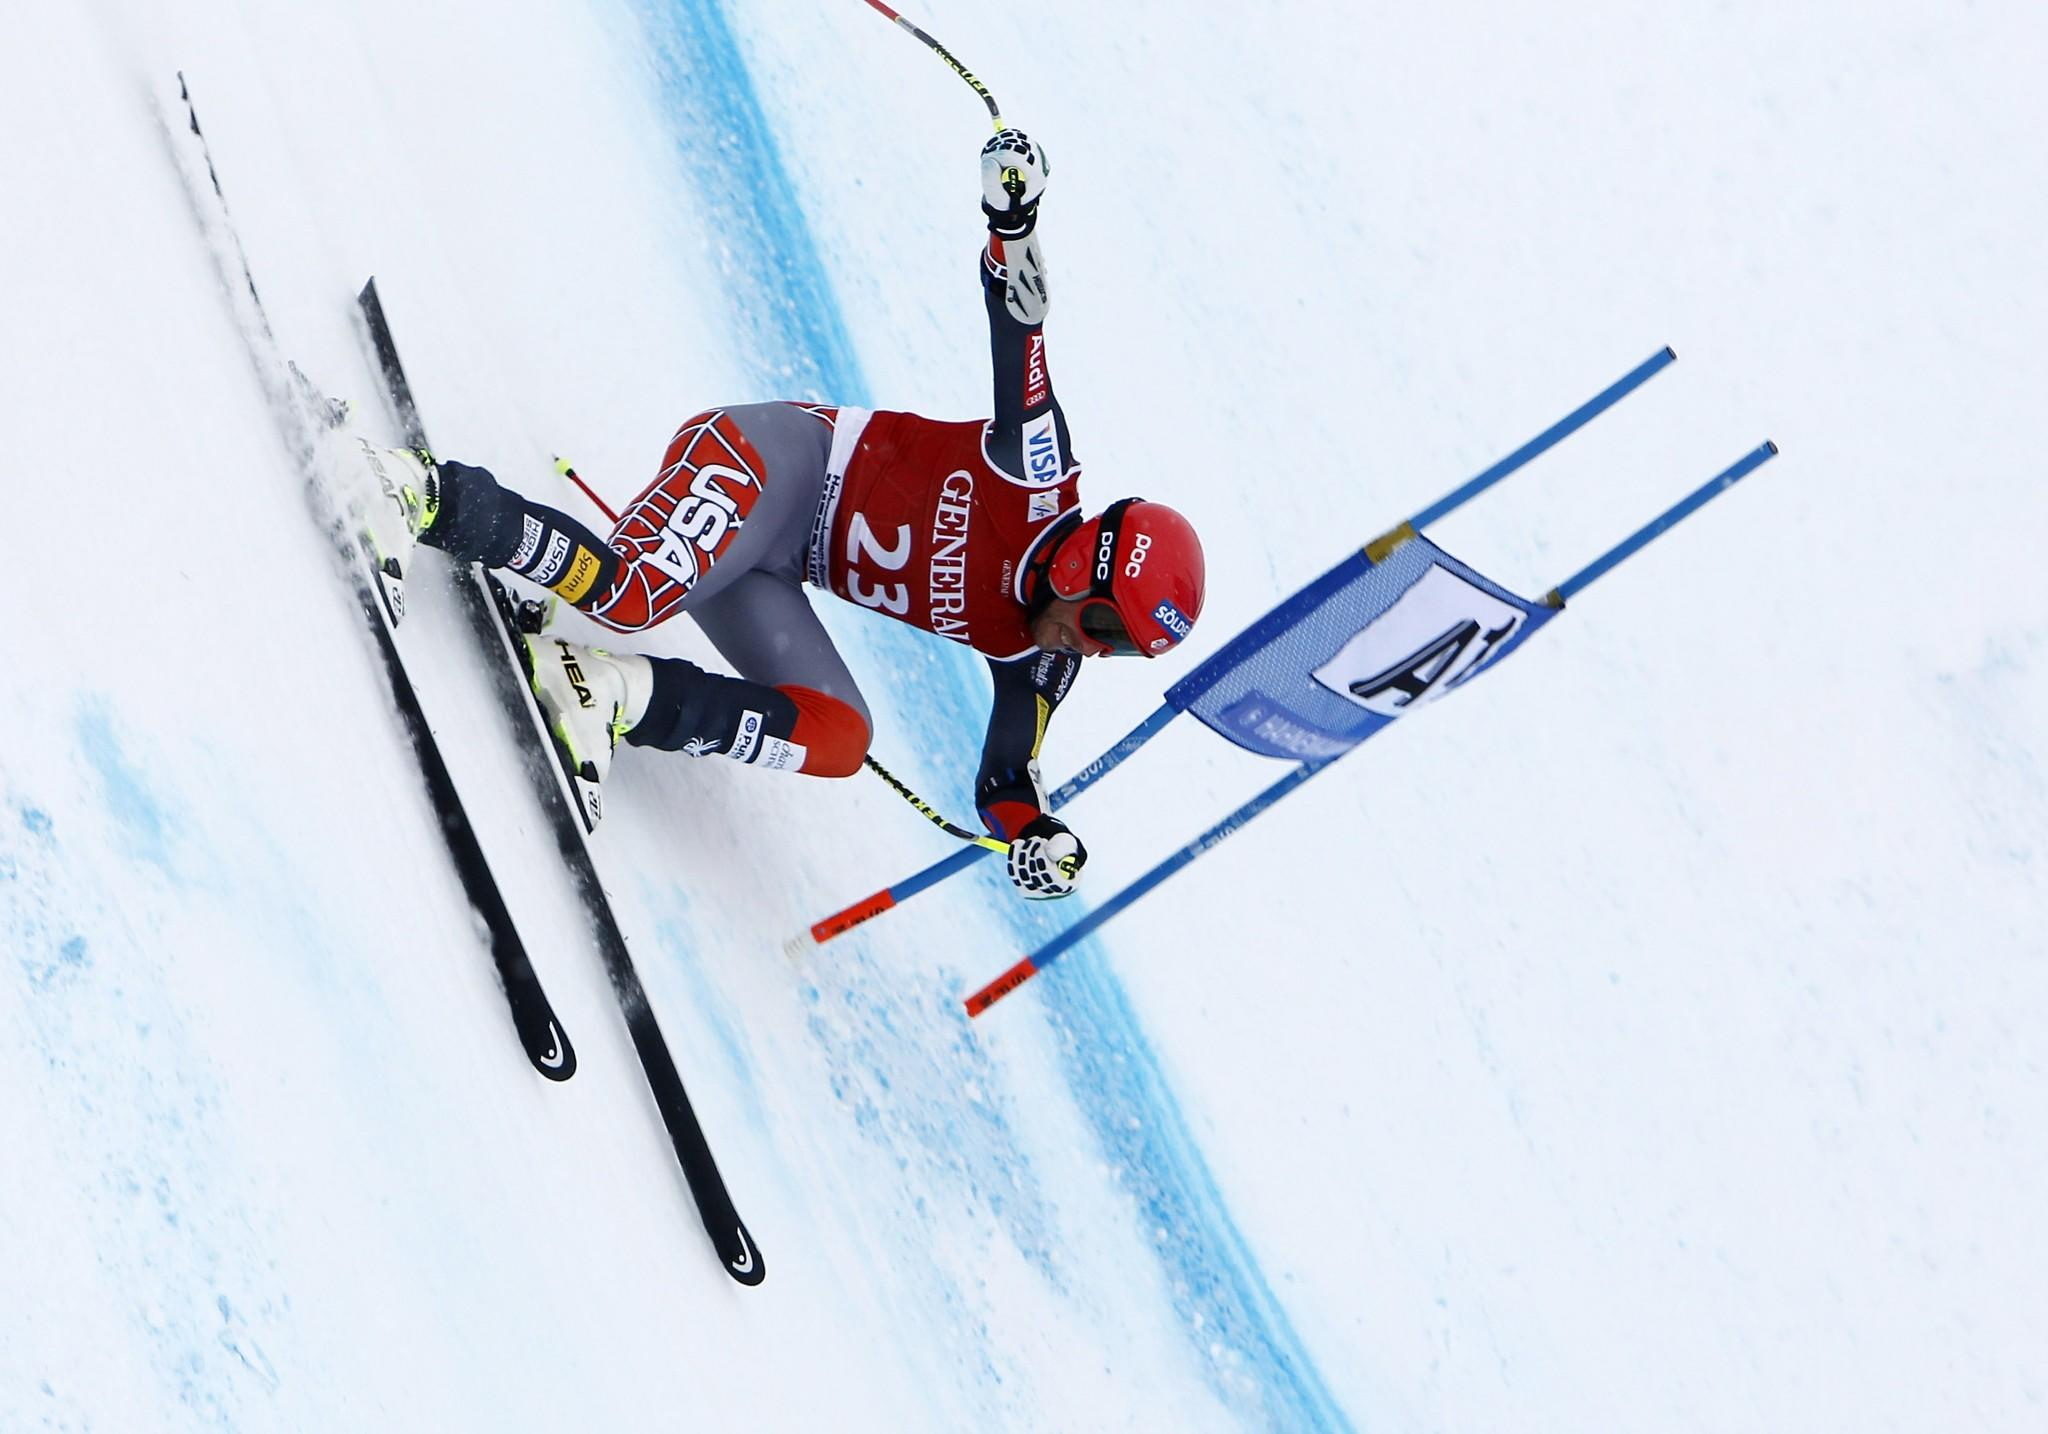 Bode Miller takes the 2nd place during the Audi FIS Alpine Ski World Cup Men's Super-G in Kitzbuehel, Austria. (Alexis Boichard/Getty Photo)